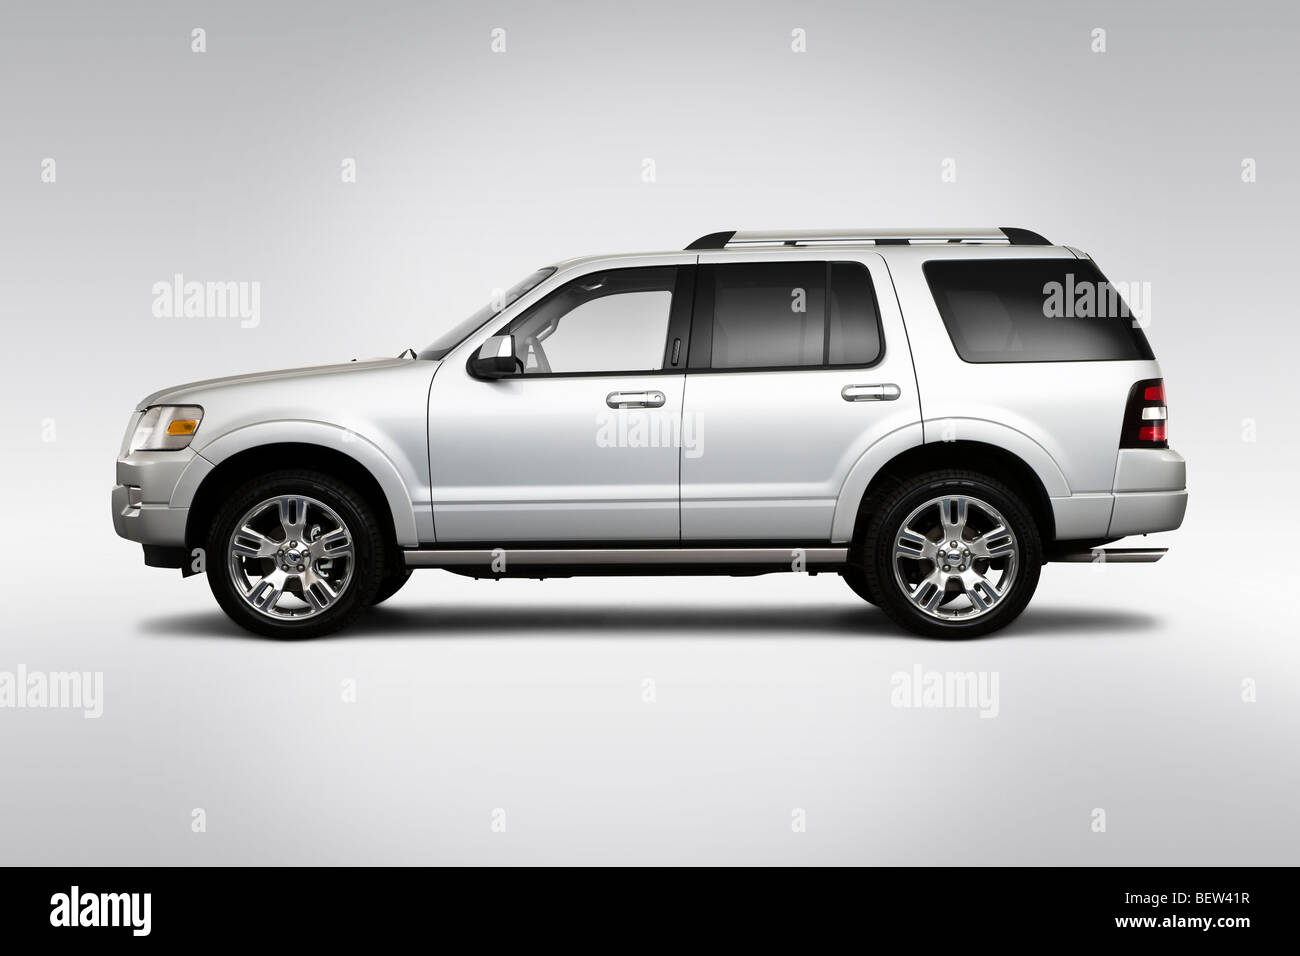 2010 ford explorer limited in silver drivers side profile